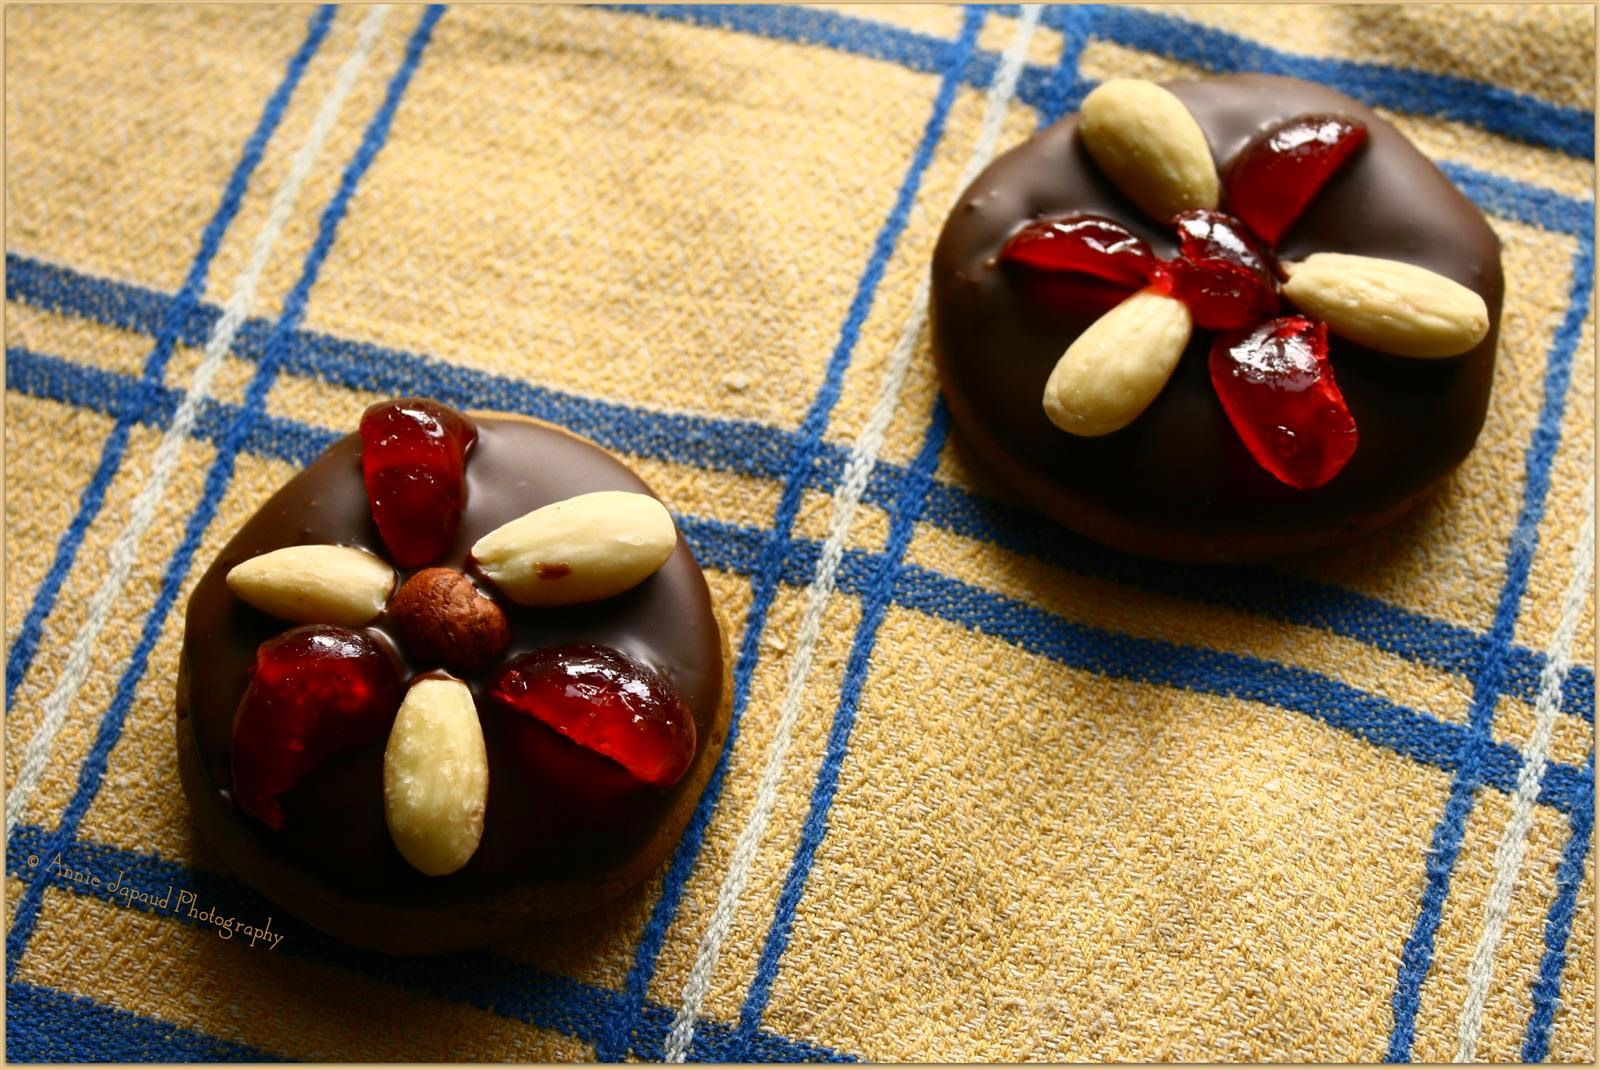 ginger snap cookies decorated with almonds and cherries